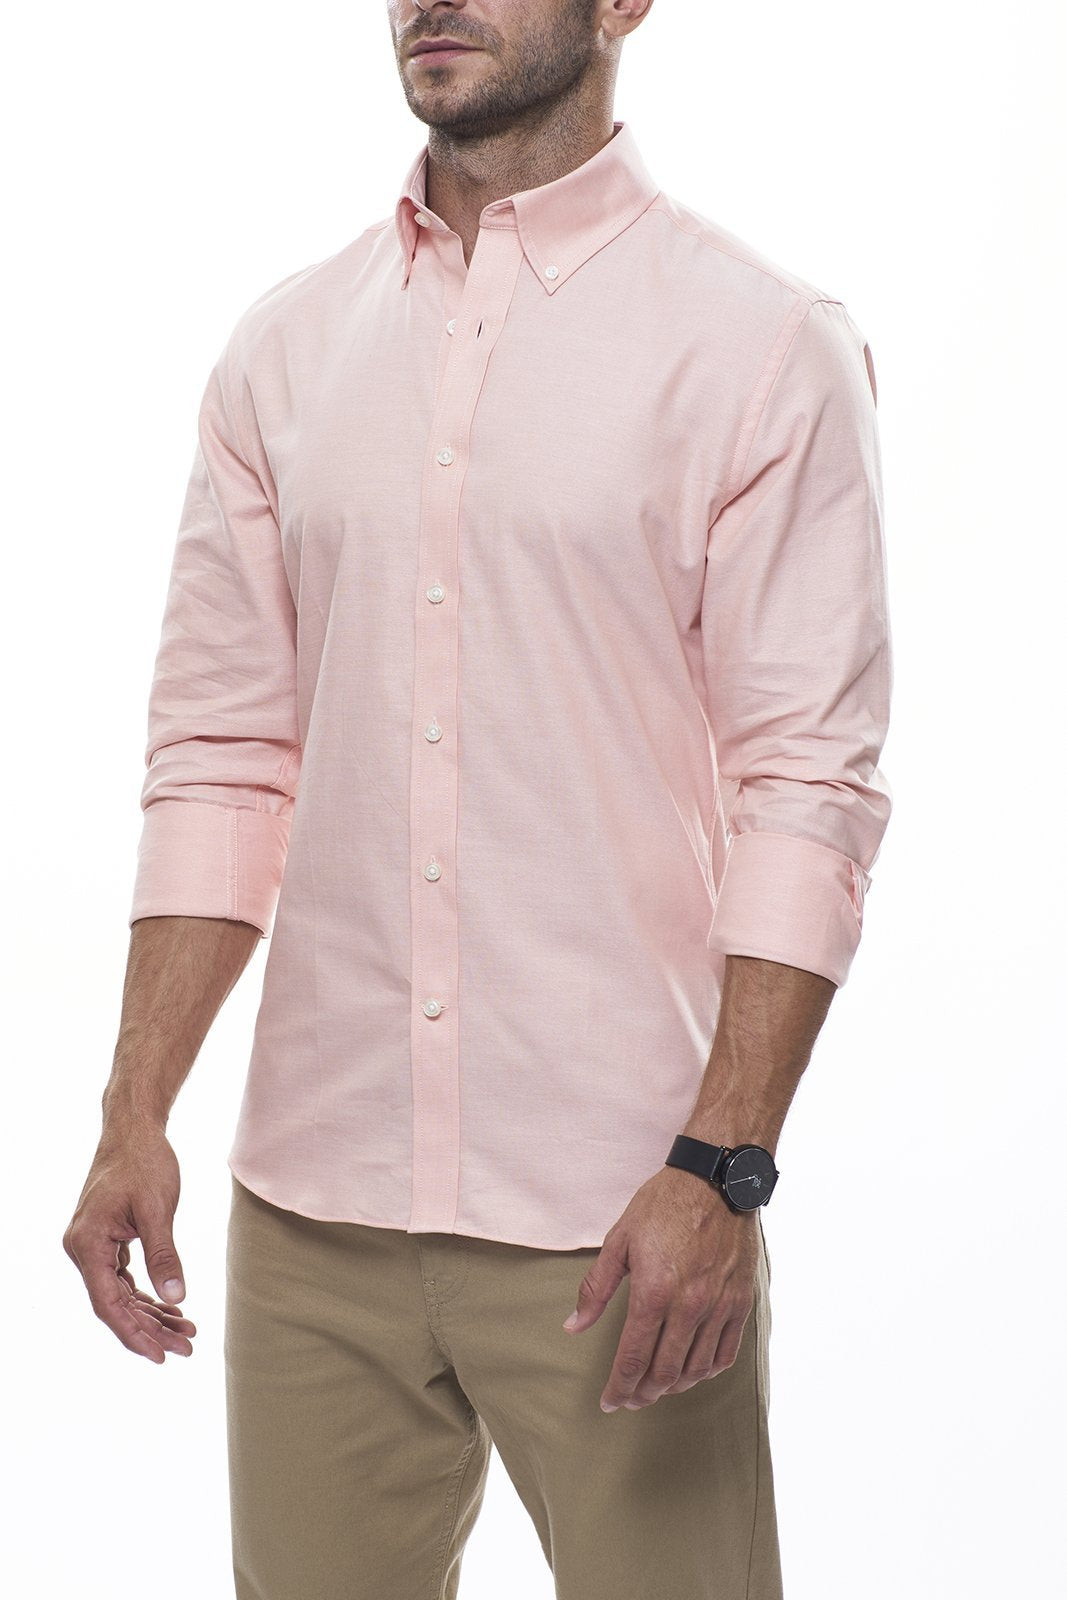 Lightweight Oxford in Orange: Semi-Spread Collar, Long Sleeve